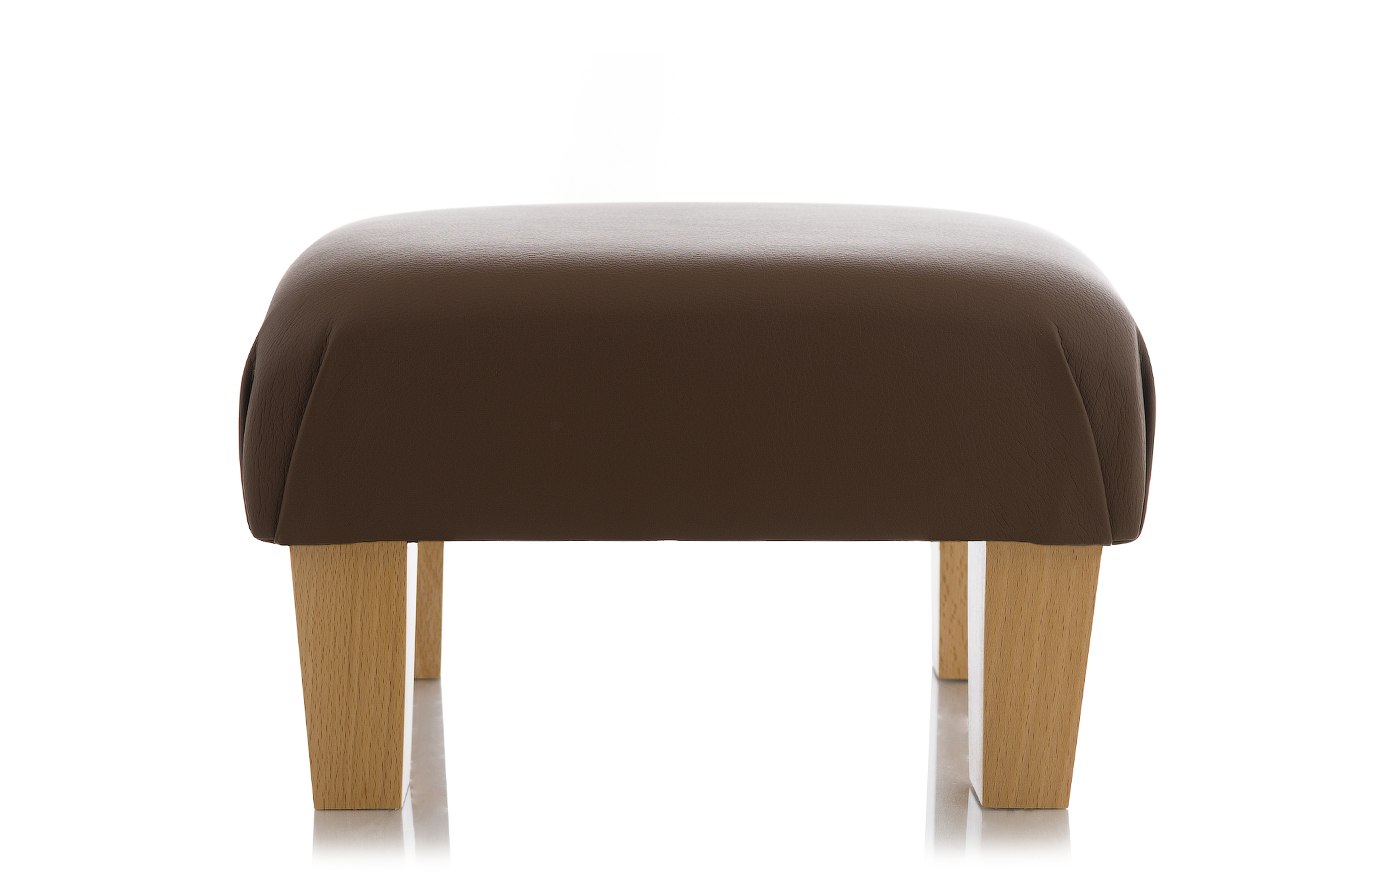 Klein Voetenbankje New Leather Footstool Black Brown Ottoman Foot Rest Small